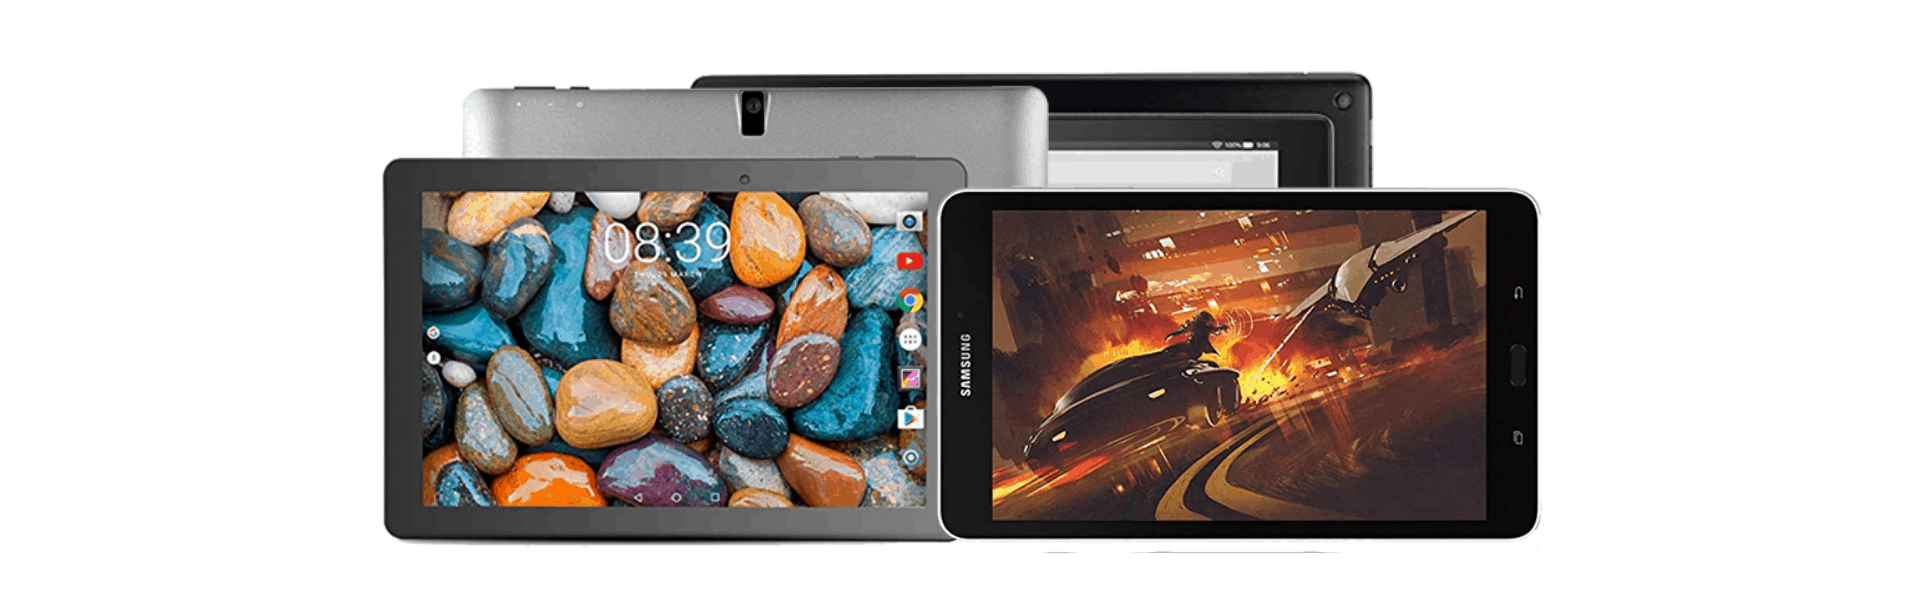 best tablets for gaming under 200